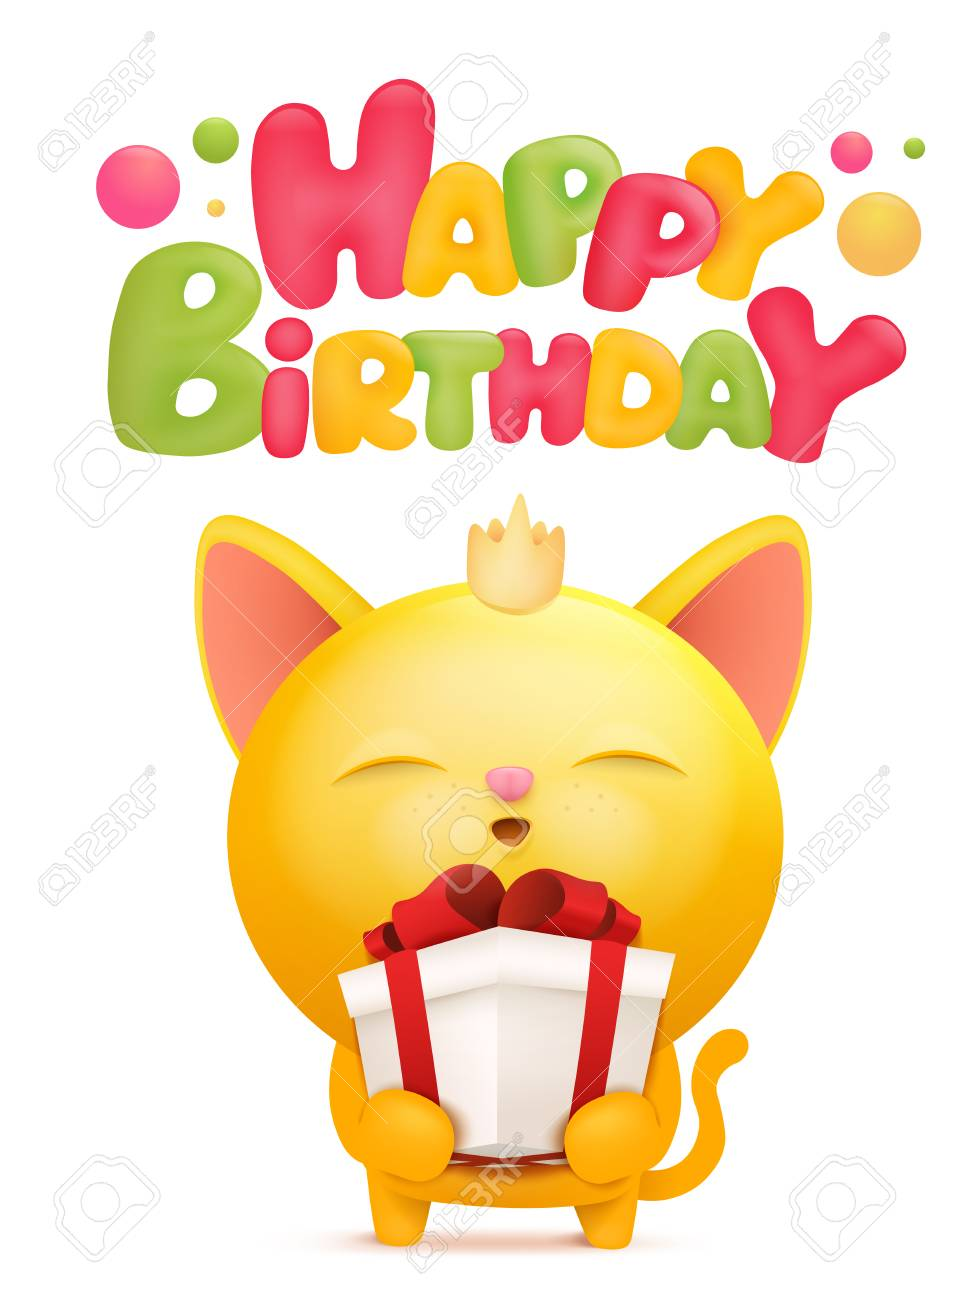 Happy Birthday Card Template With Yellow Emoji Cat Character Vector Illustration Stock